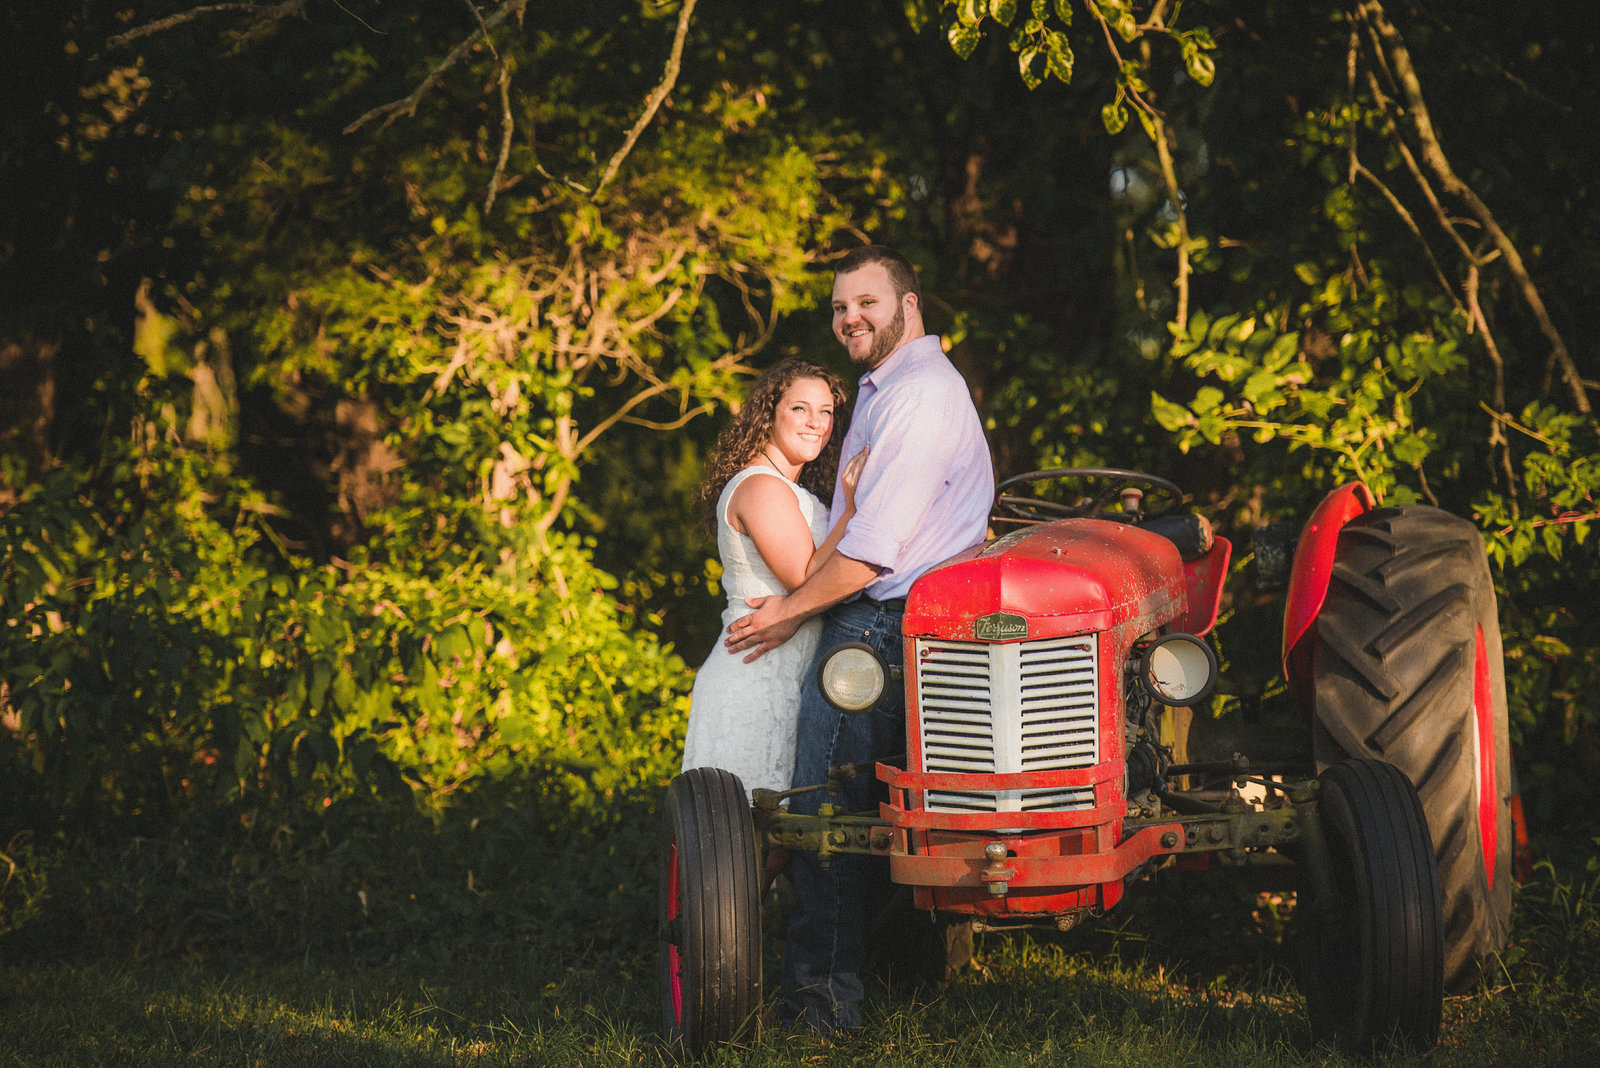 NJ_Rustic_Engagement_Photography063